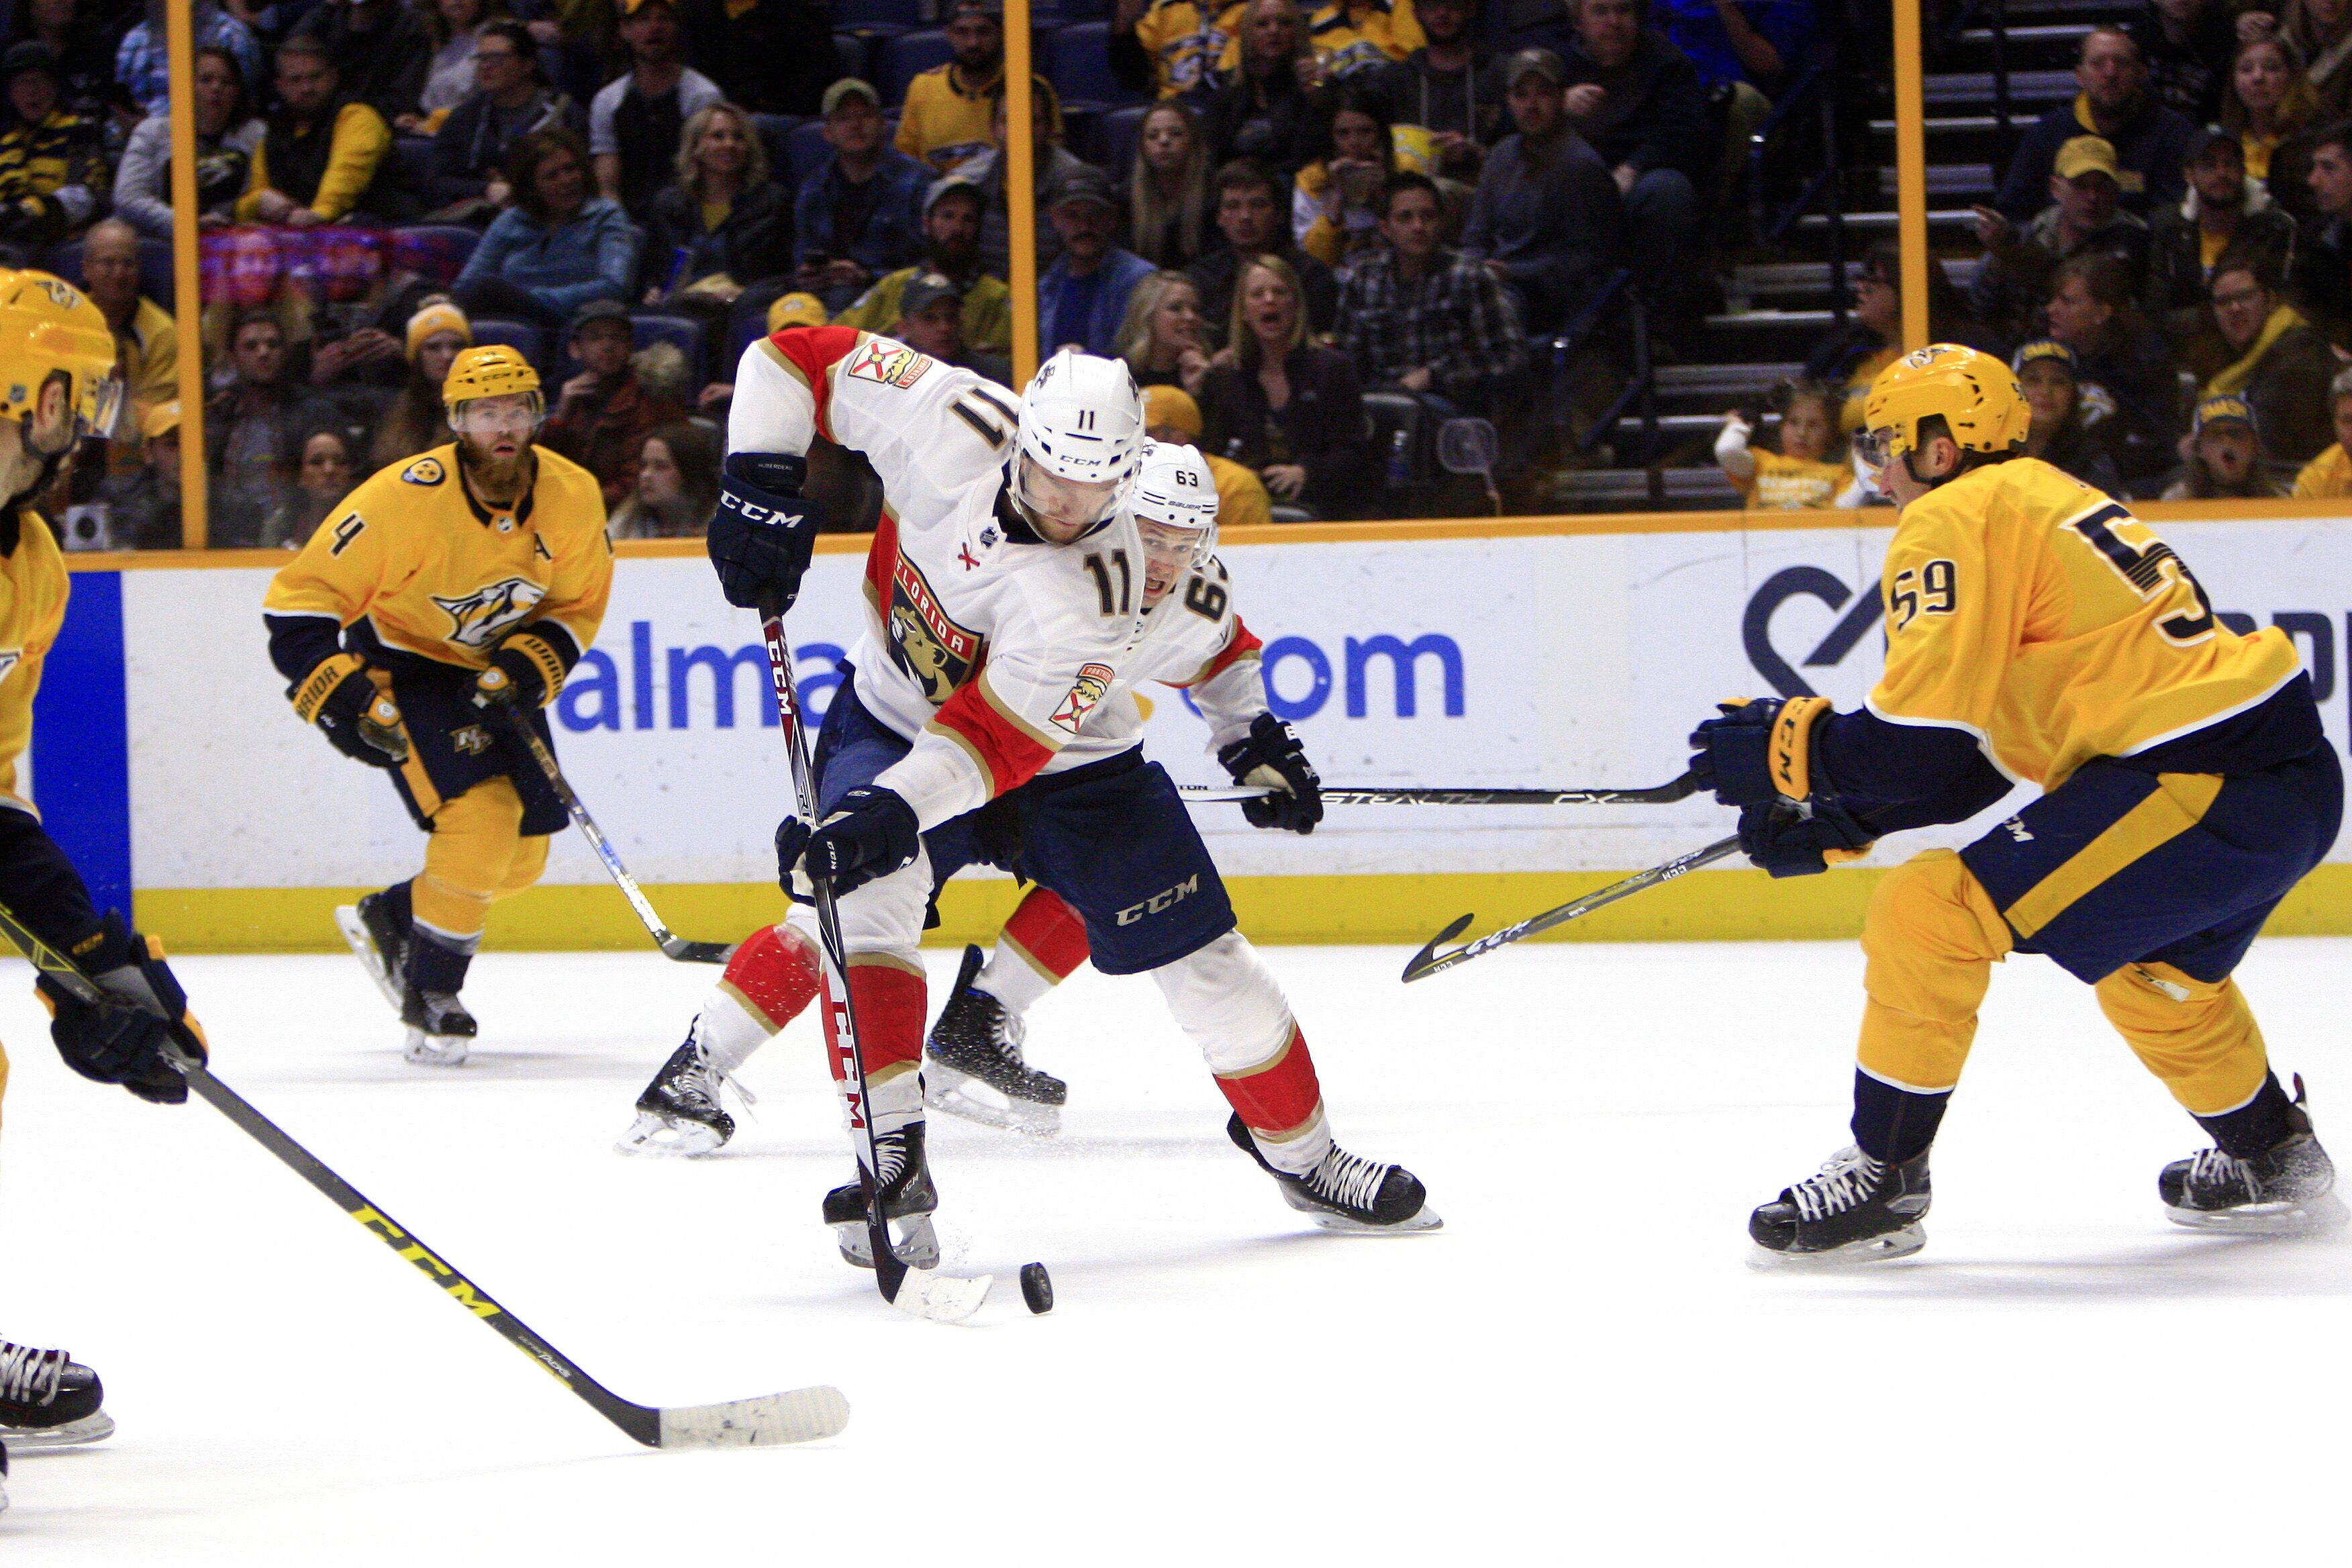 908145768-nhl-jan-20-panthers-at-predators.jpg